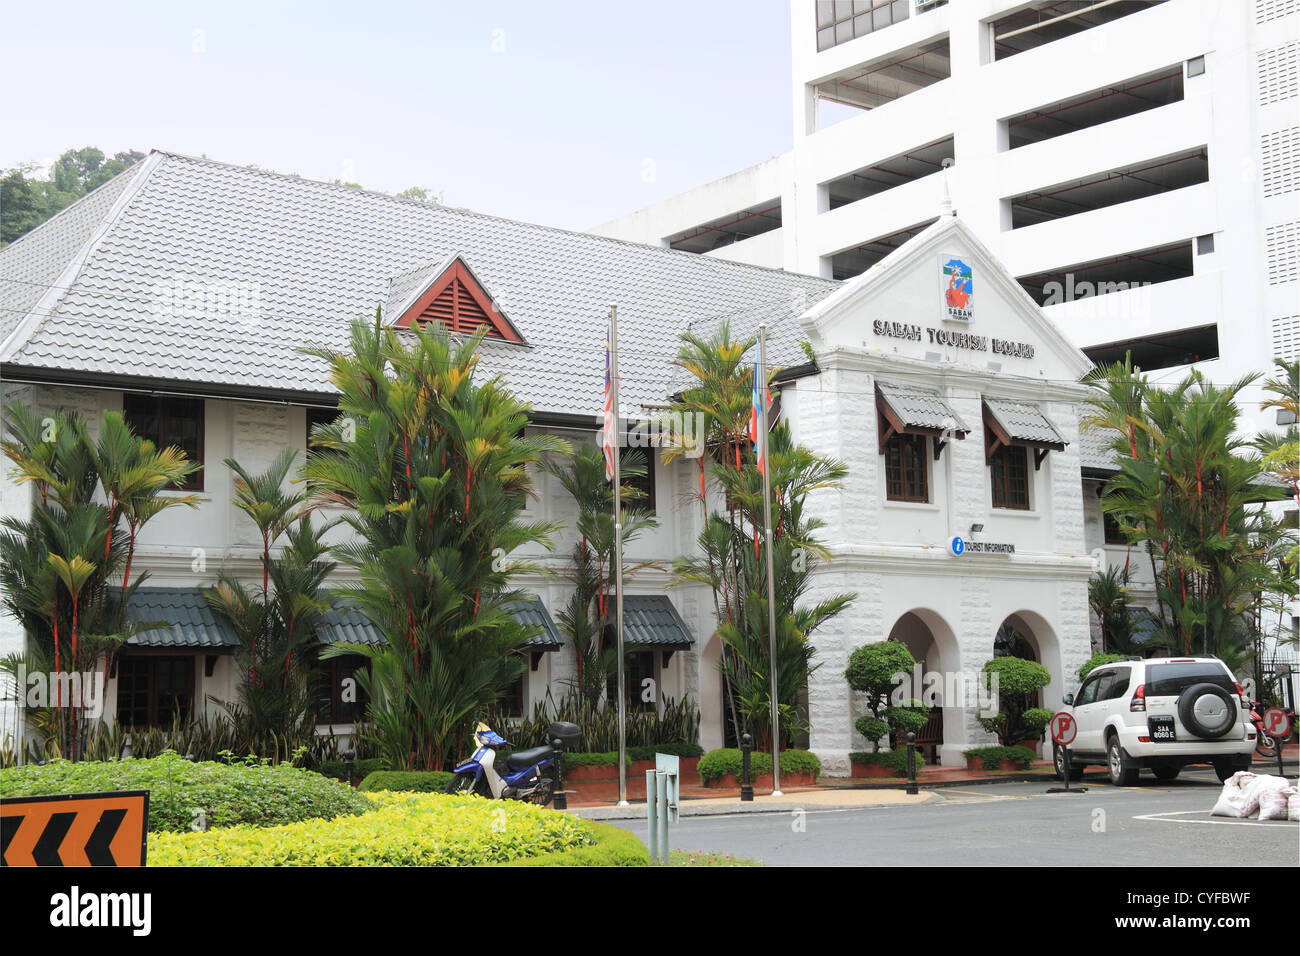 Sabah Tourism Board (formerly the Post Office and once colonial offices), Kota Kinabalu, Sabah, Borneo, Malaysia, - Stock Image